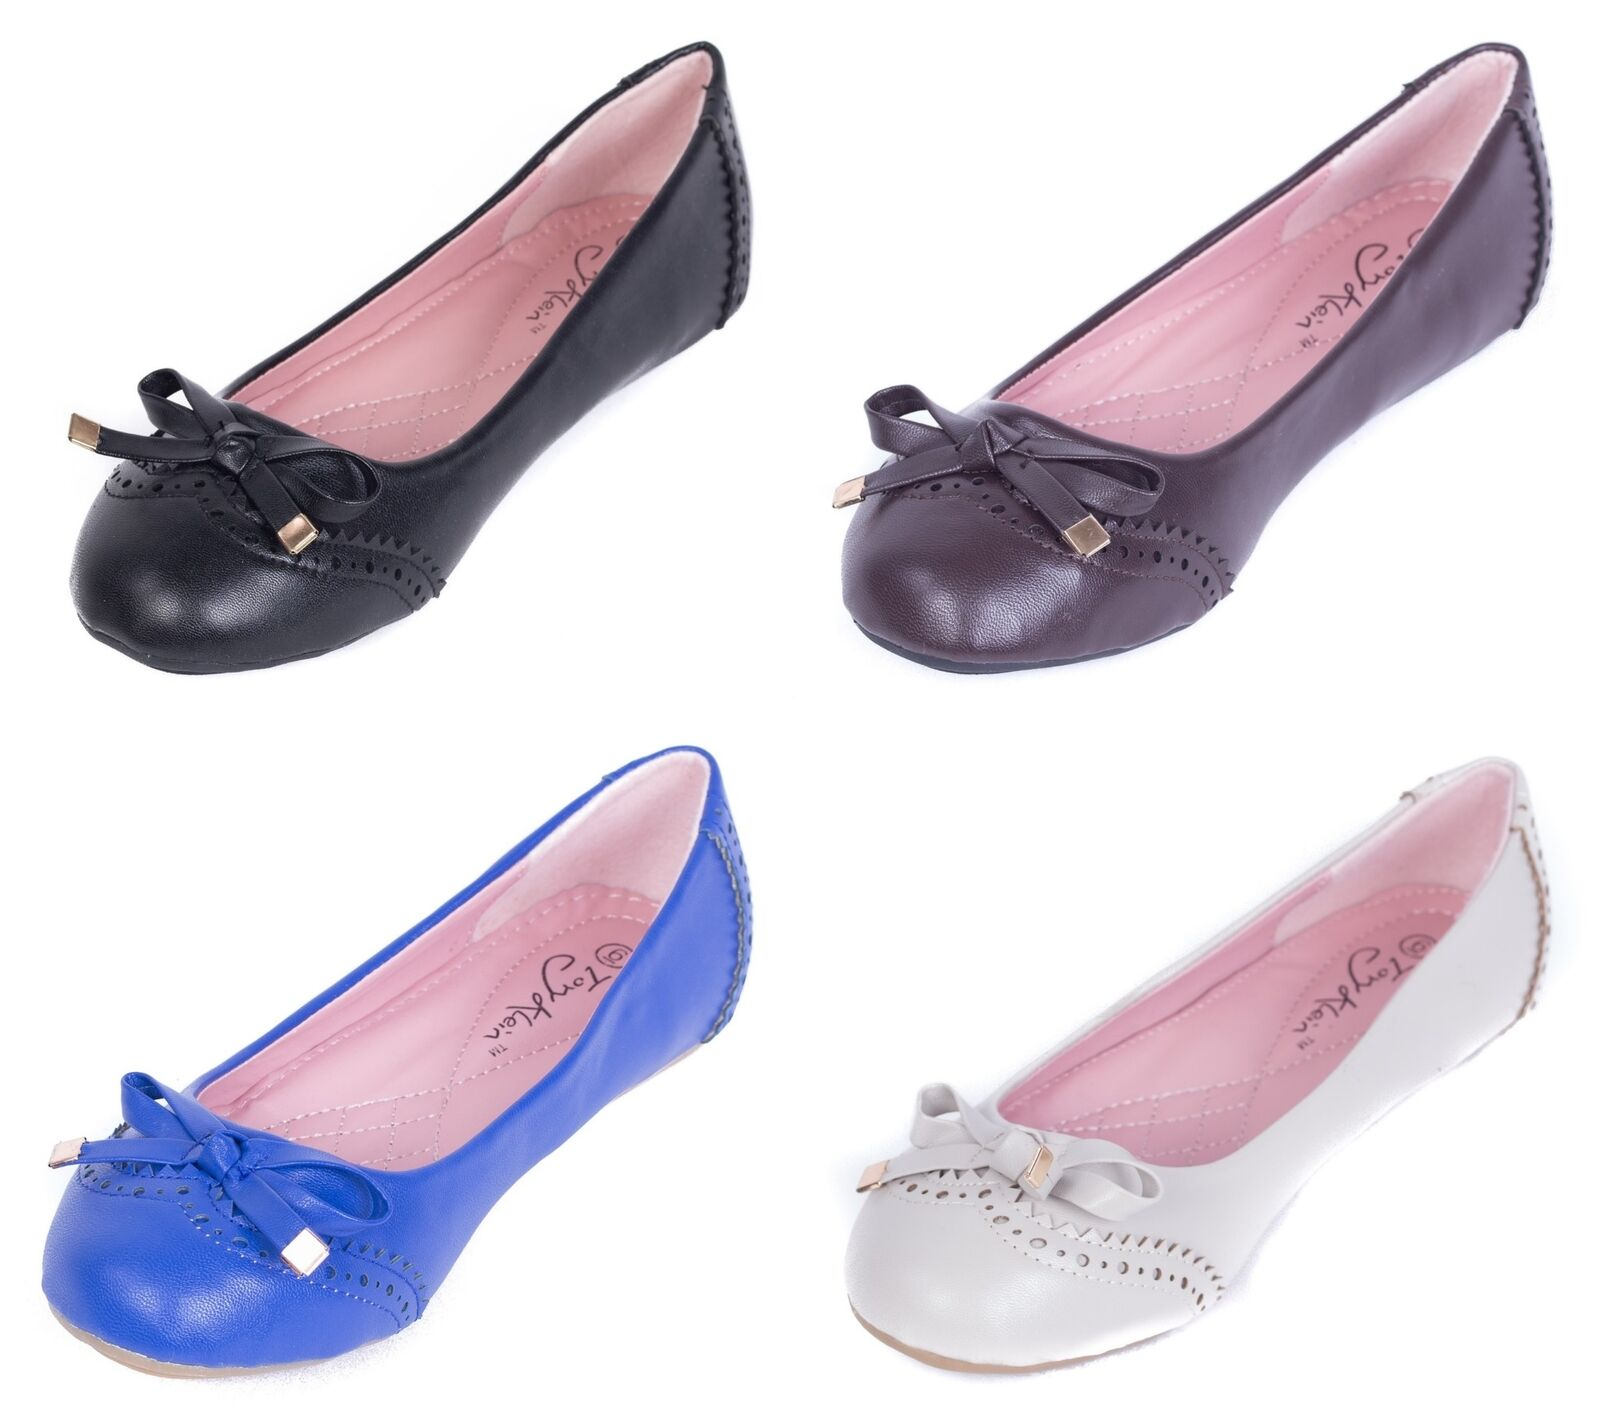 Women Ballerina Flats Ballet Slip-Ons Loafers Buckle Shoes /w Metal-Tipped Bow Buckle Loafers bcec92